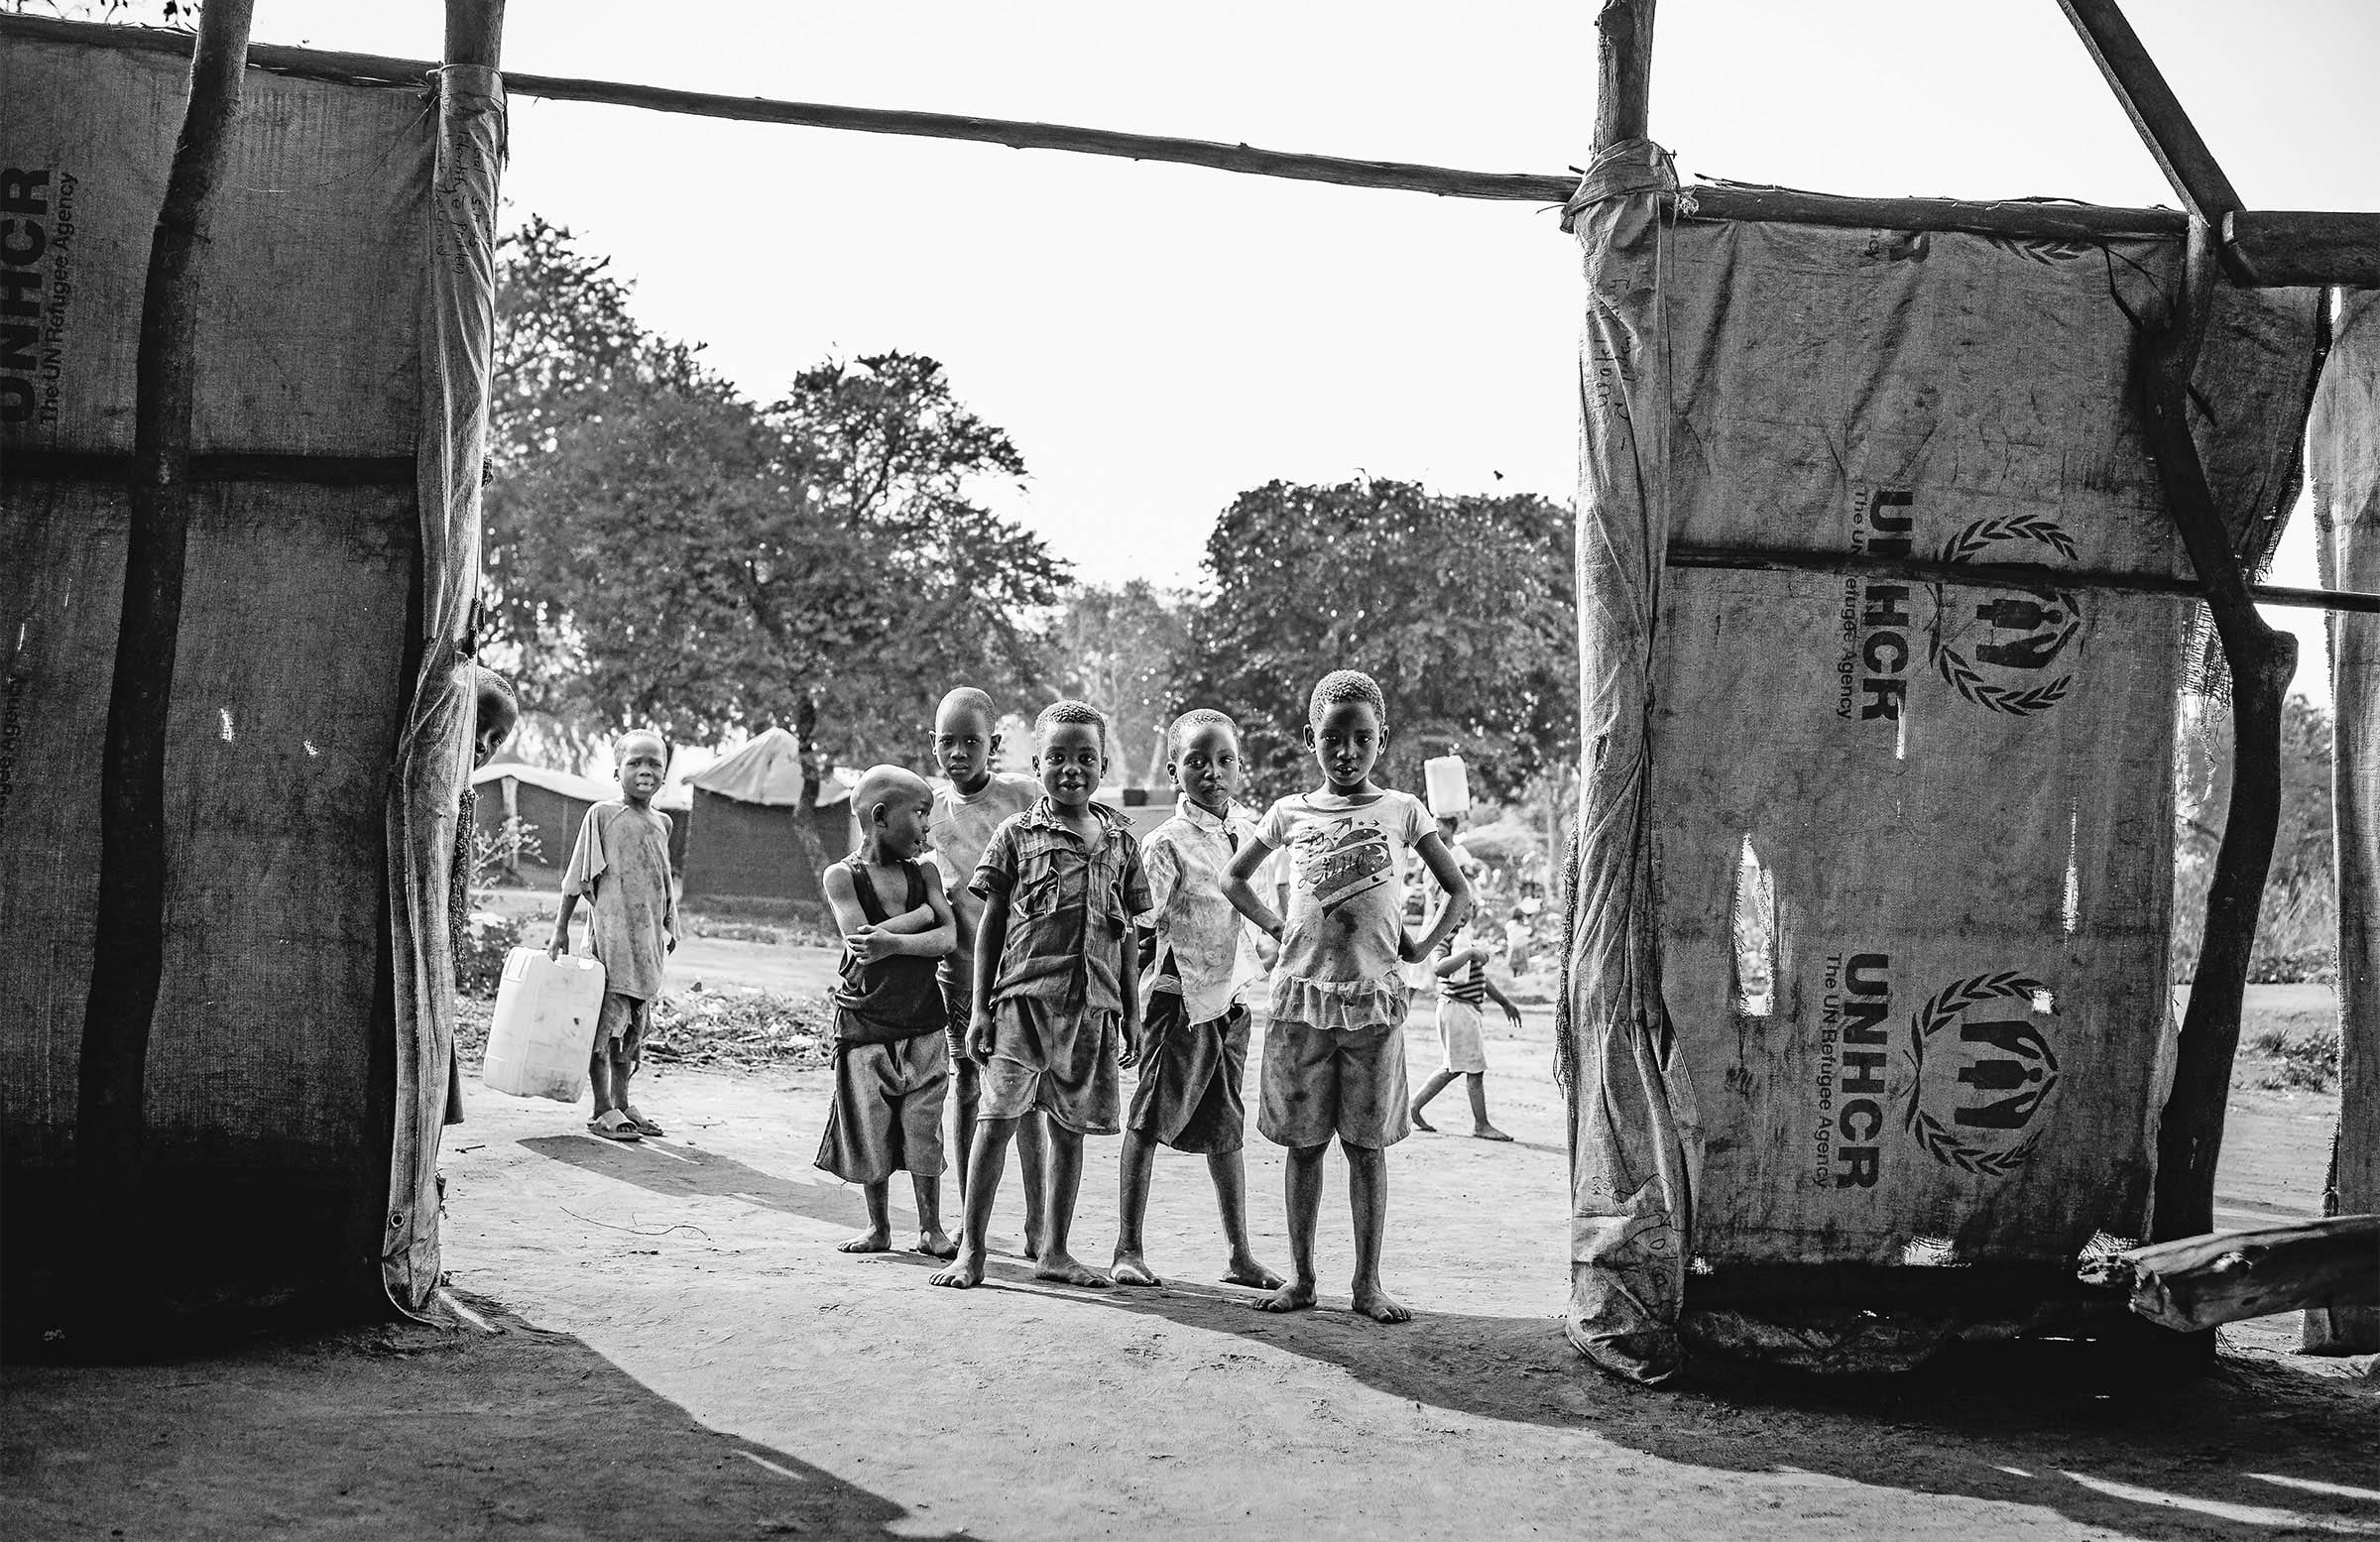 children stand in the entrance of a large tent structure, staring at the camera